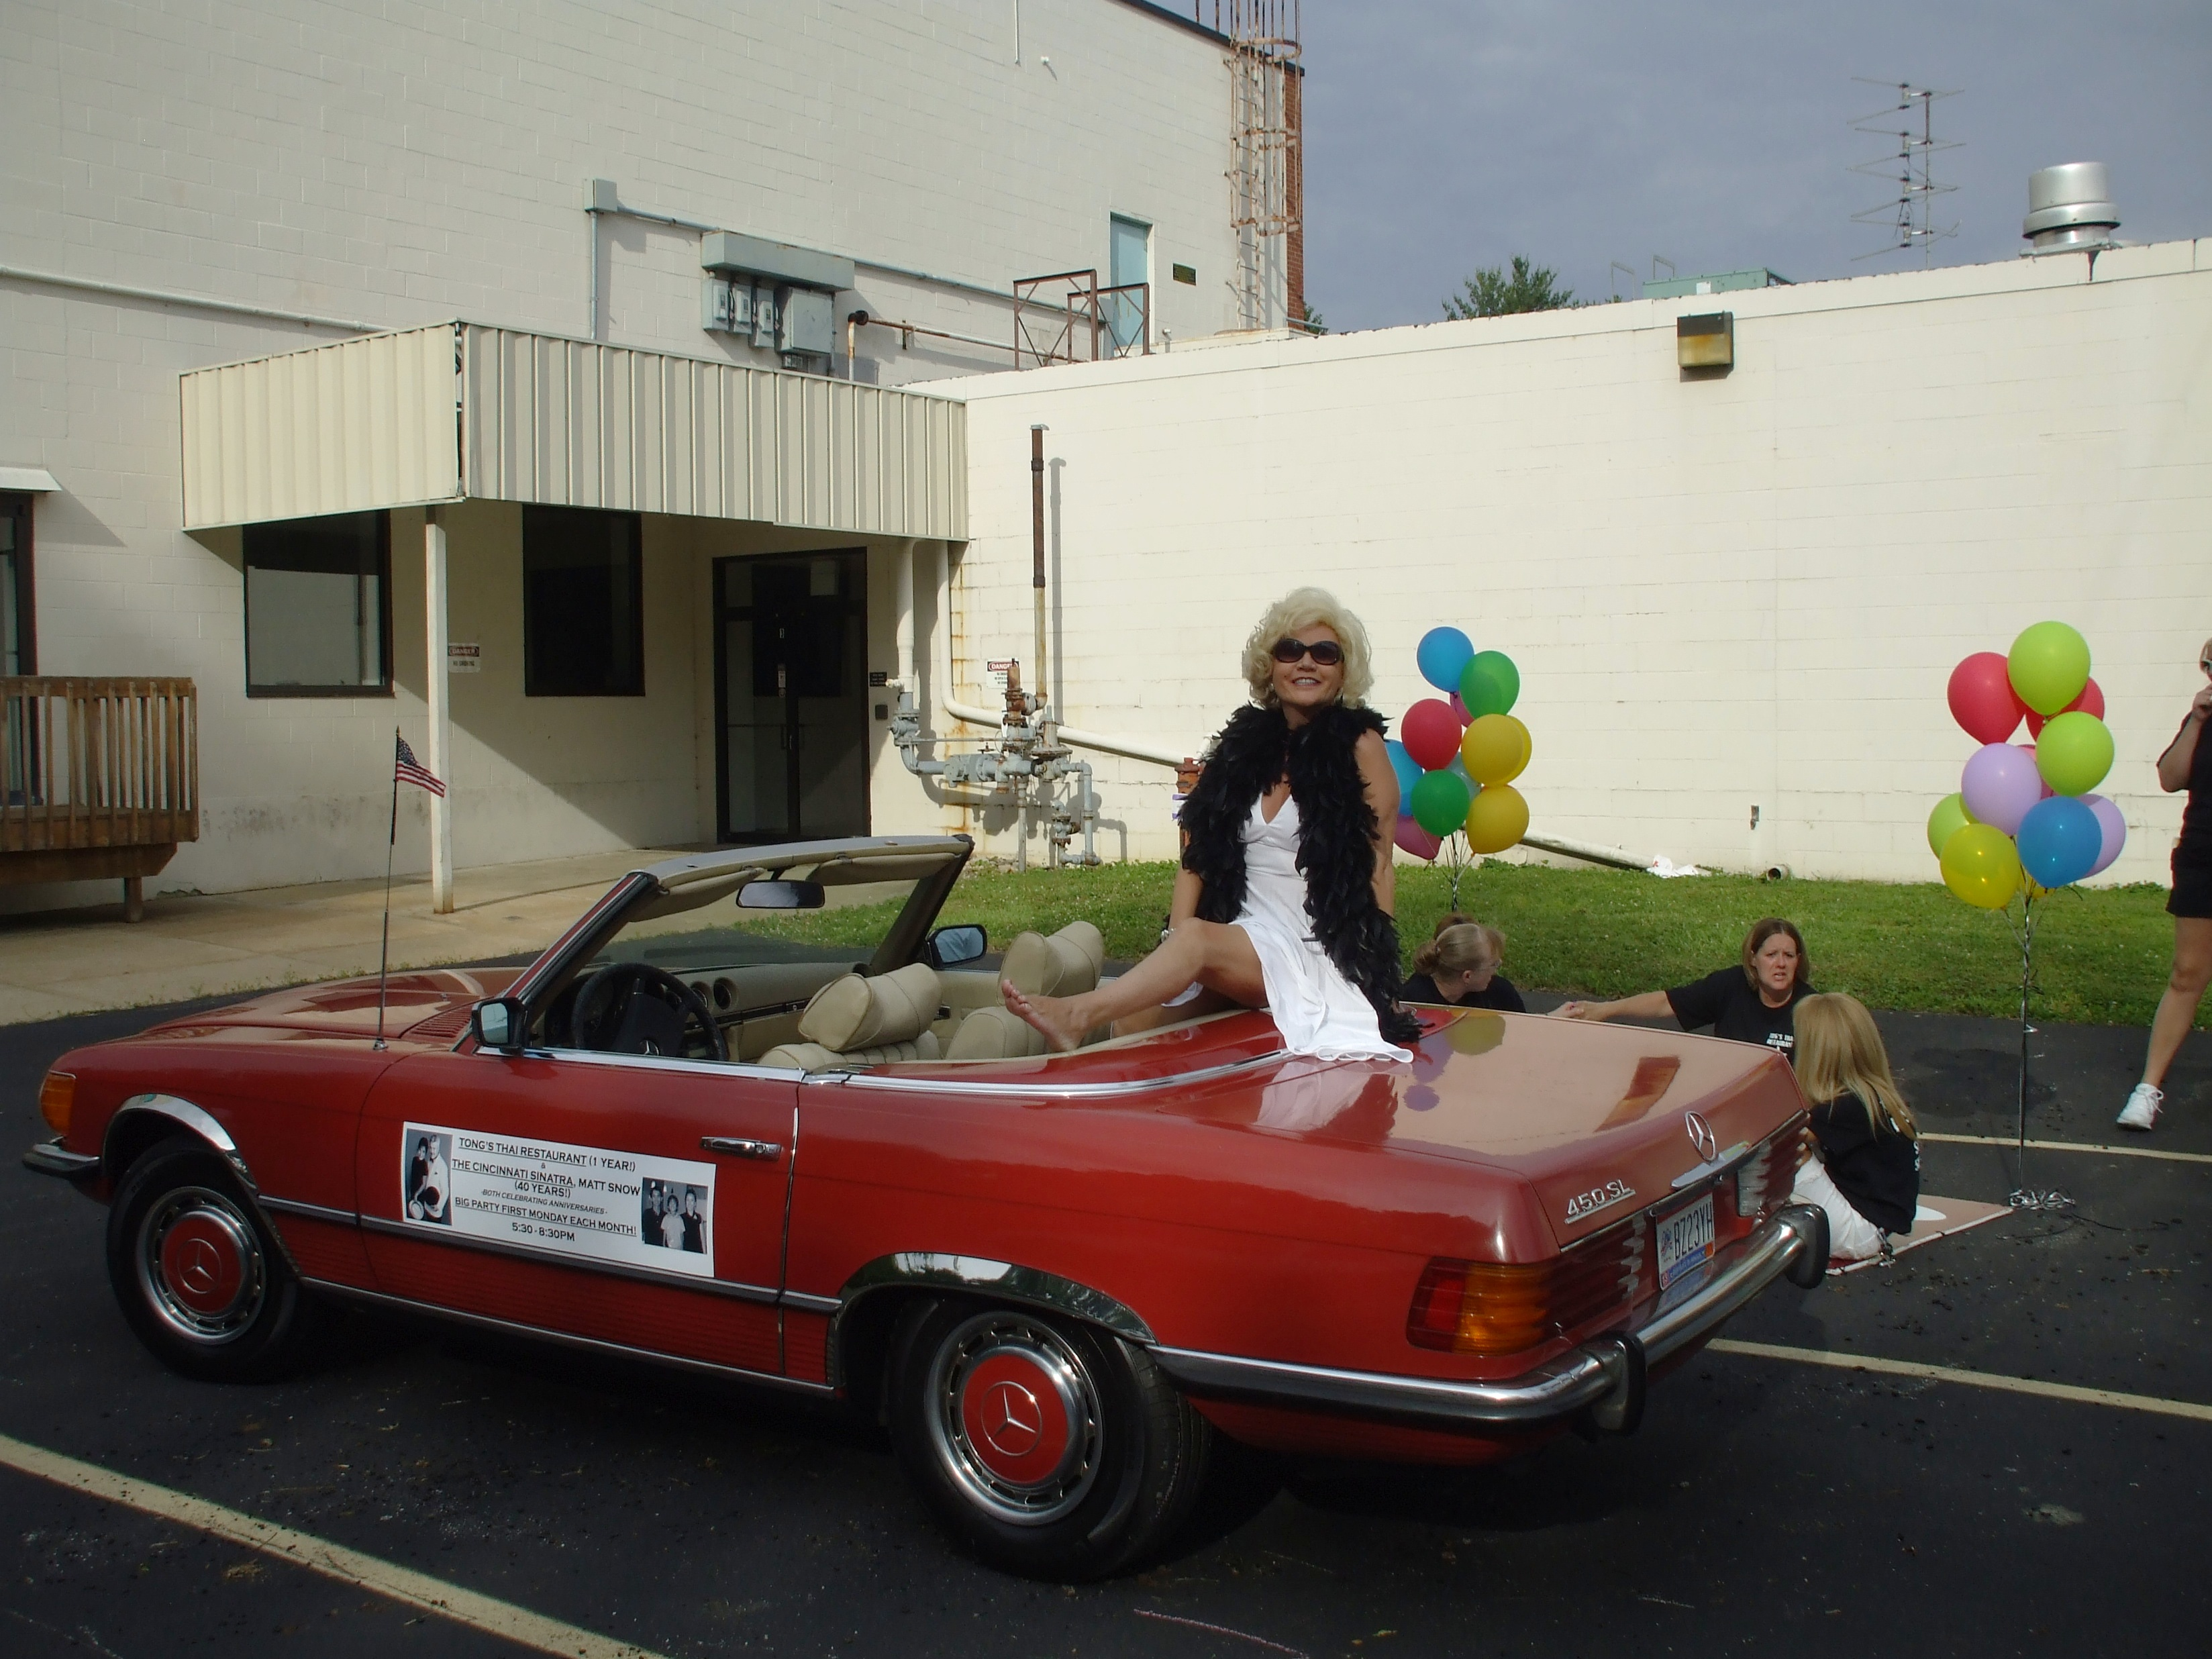 Marilyn gives 'em a little leg at parade 1